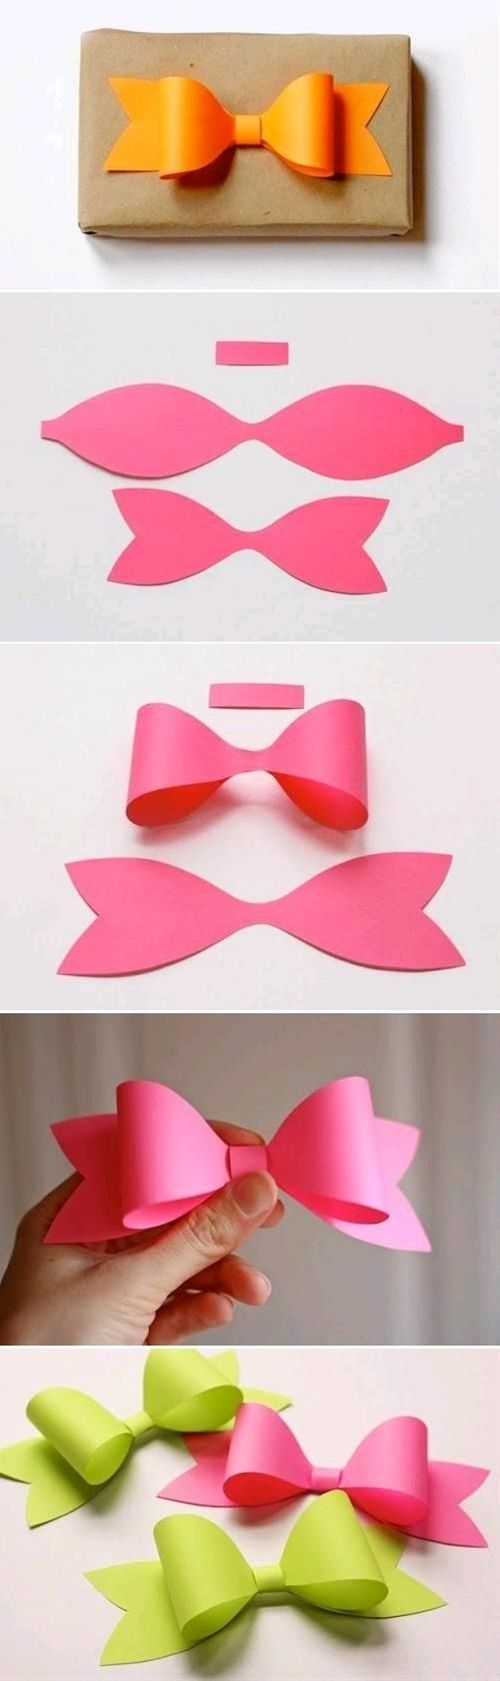 DIY bows - Popular Design Pins